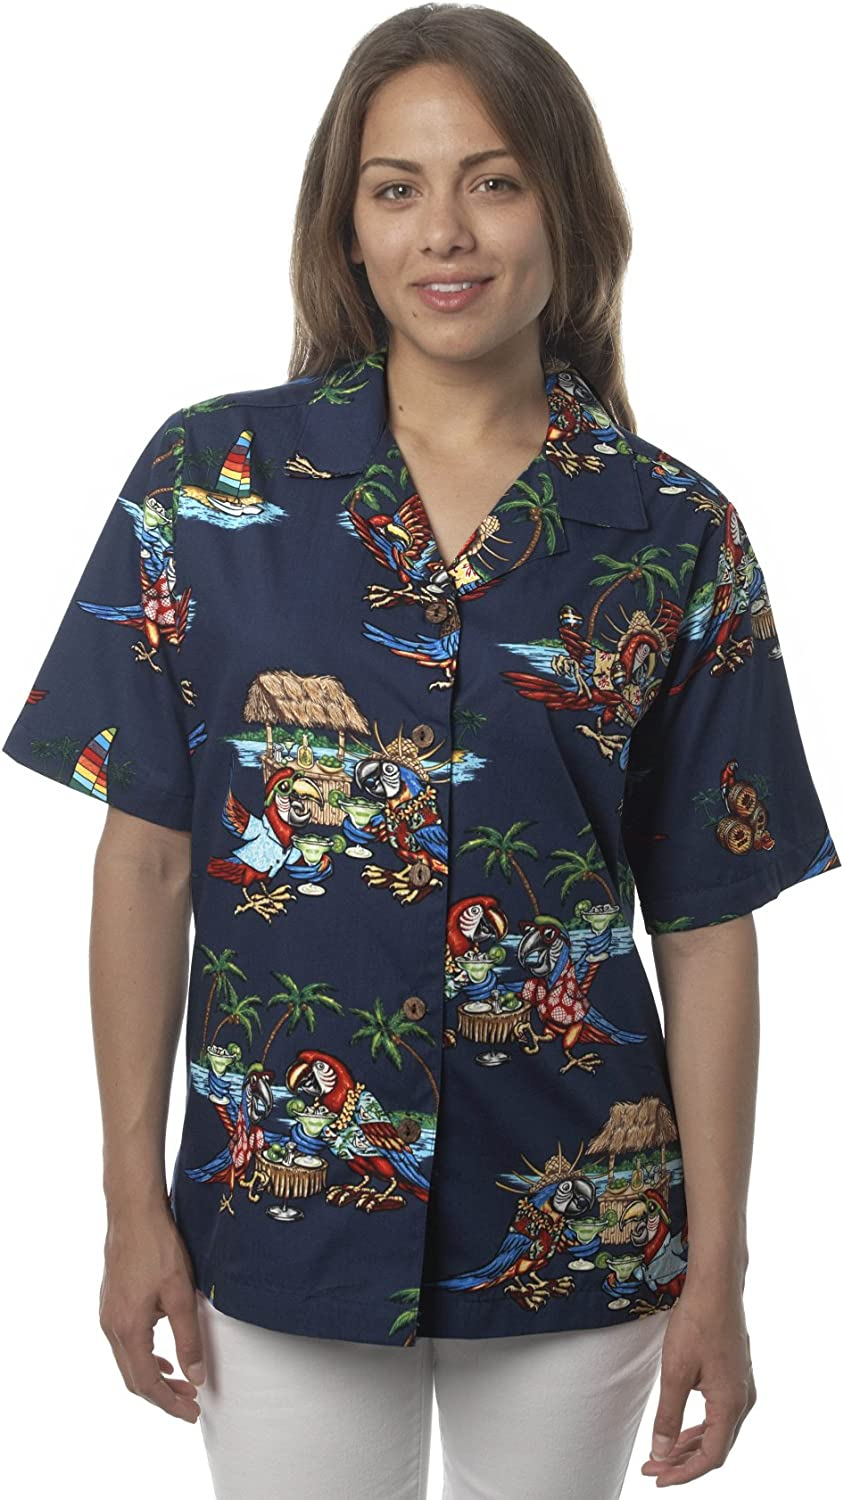 Selling rankings Benny's Womens Parrots and Margaritas Lowest price challenge Hawaiian Shirt Parrothead